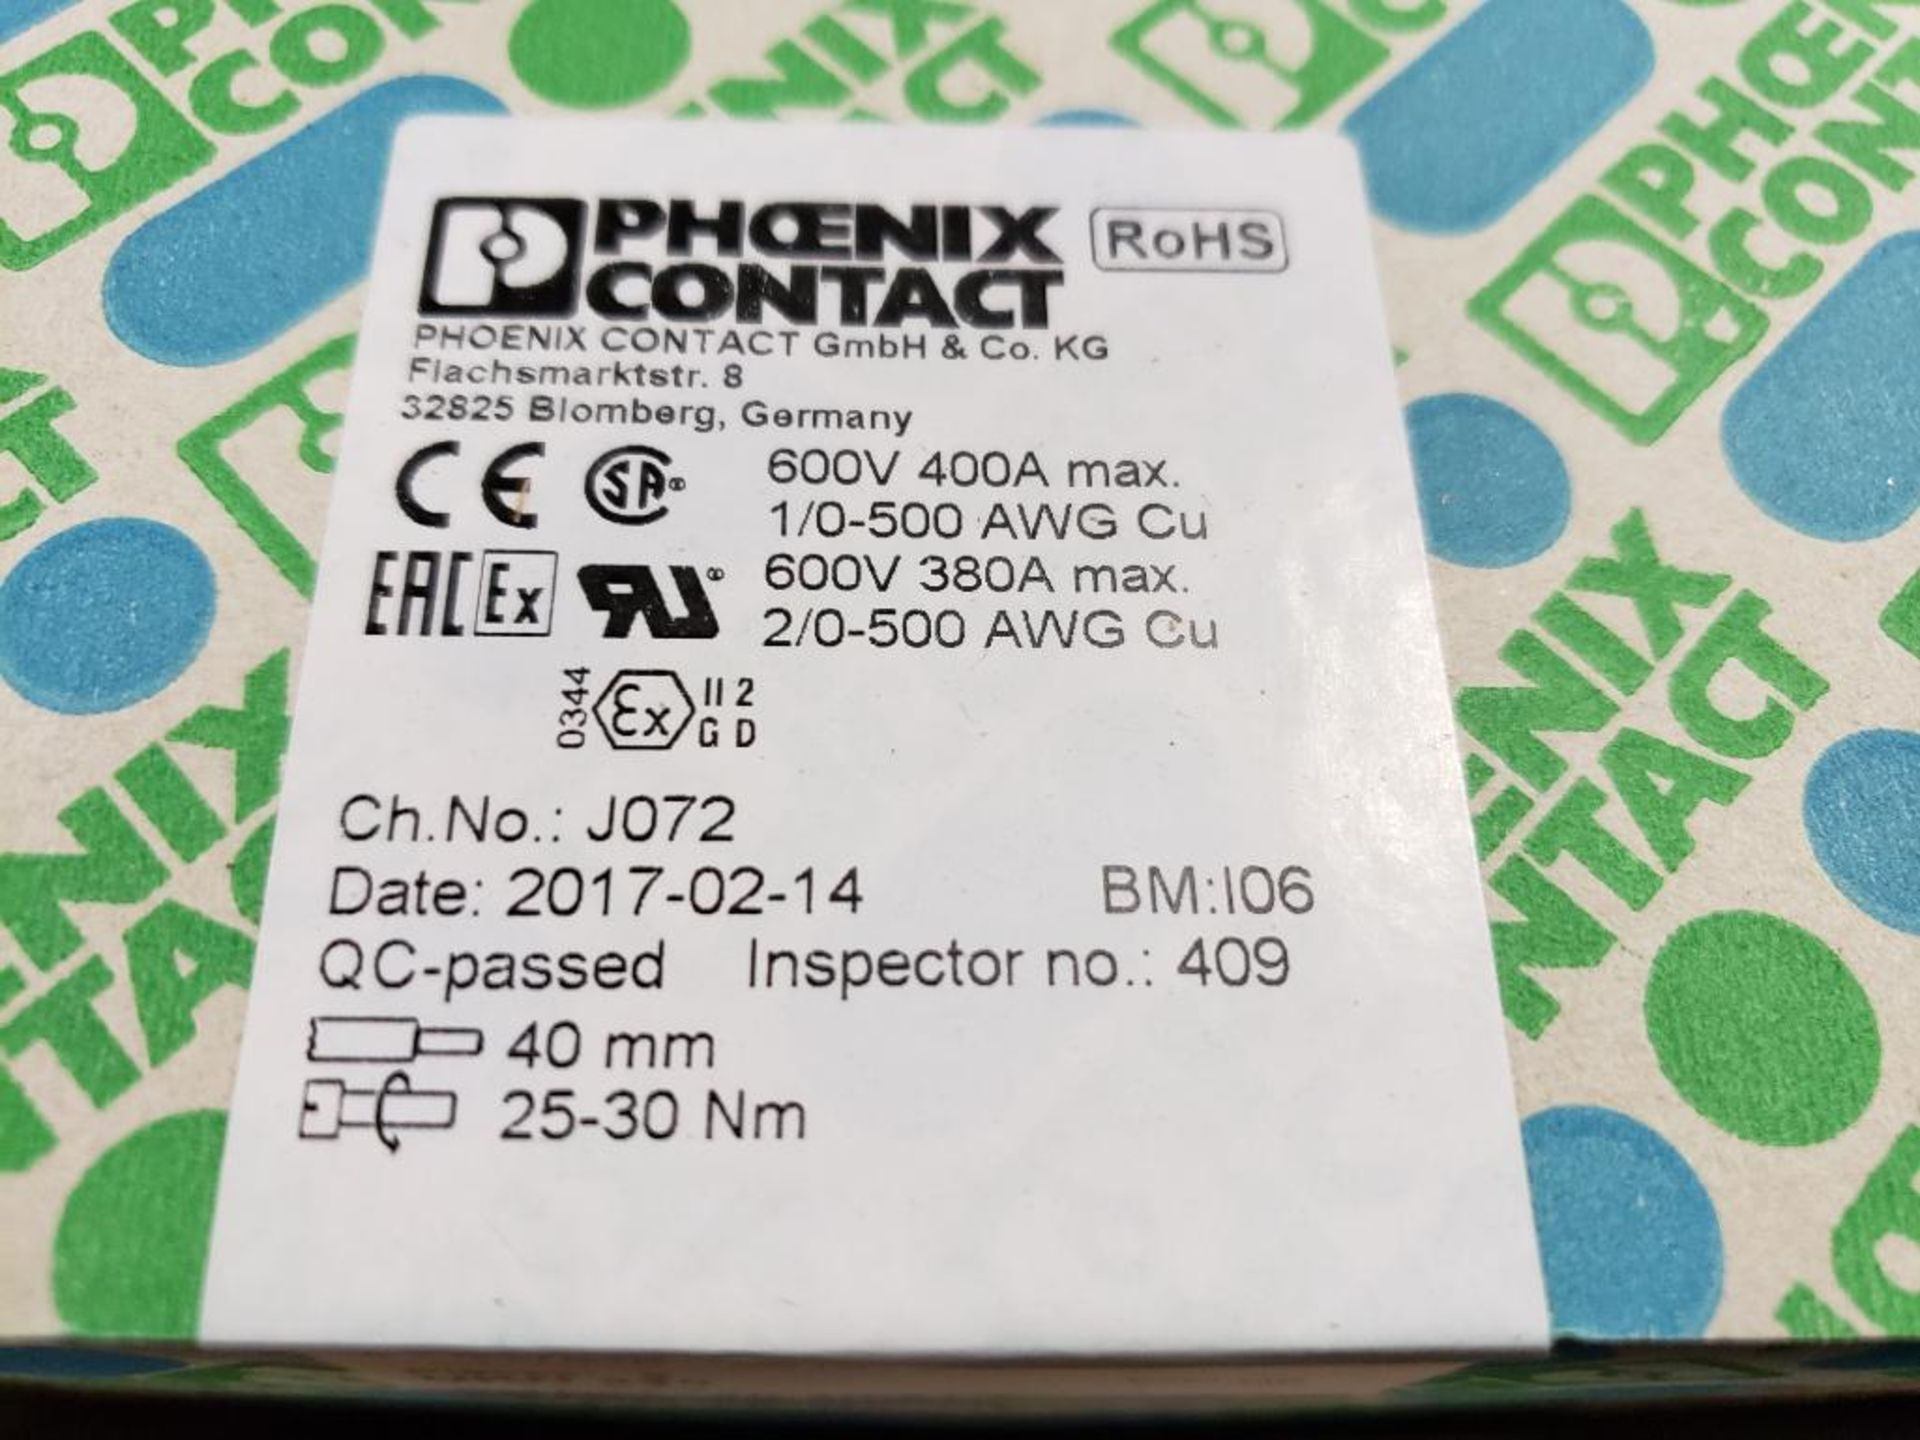 Qty 4 - Boxes Phoenix Contact model 3010217 terminal block. New in box. - Image 2 of 3